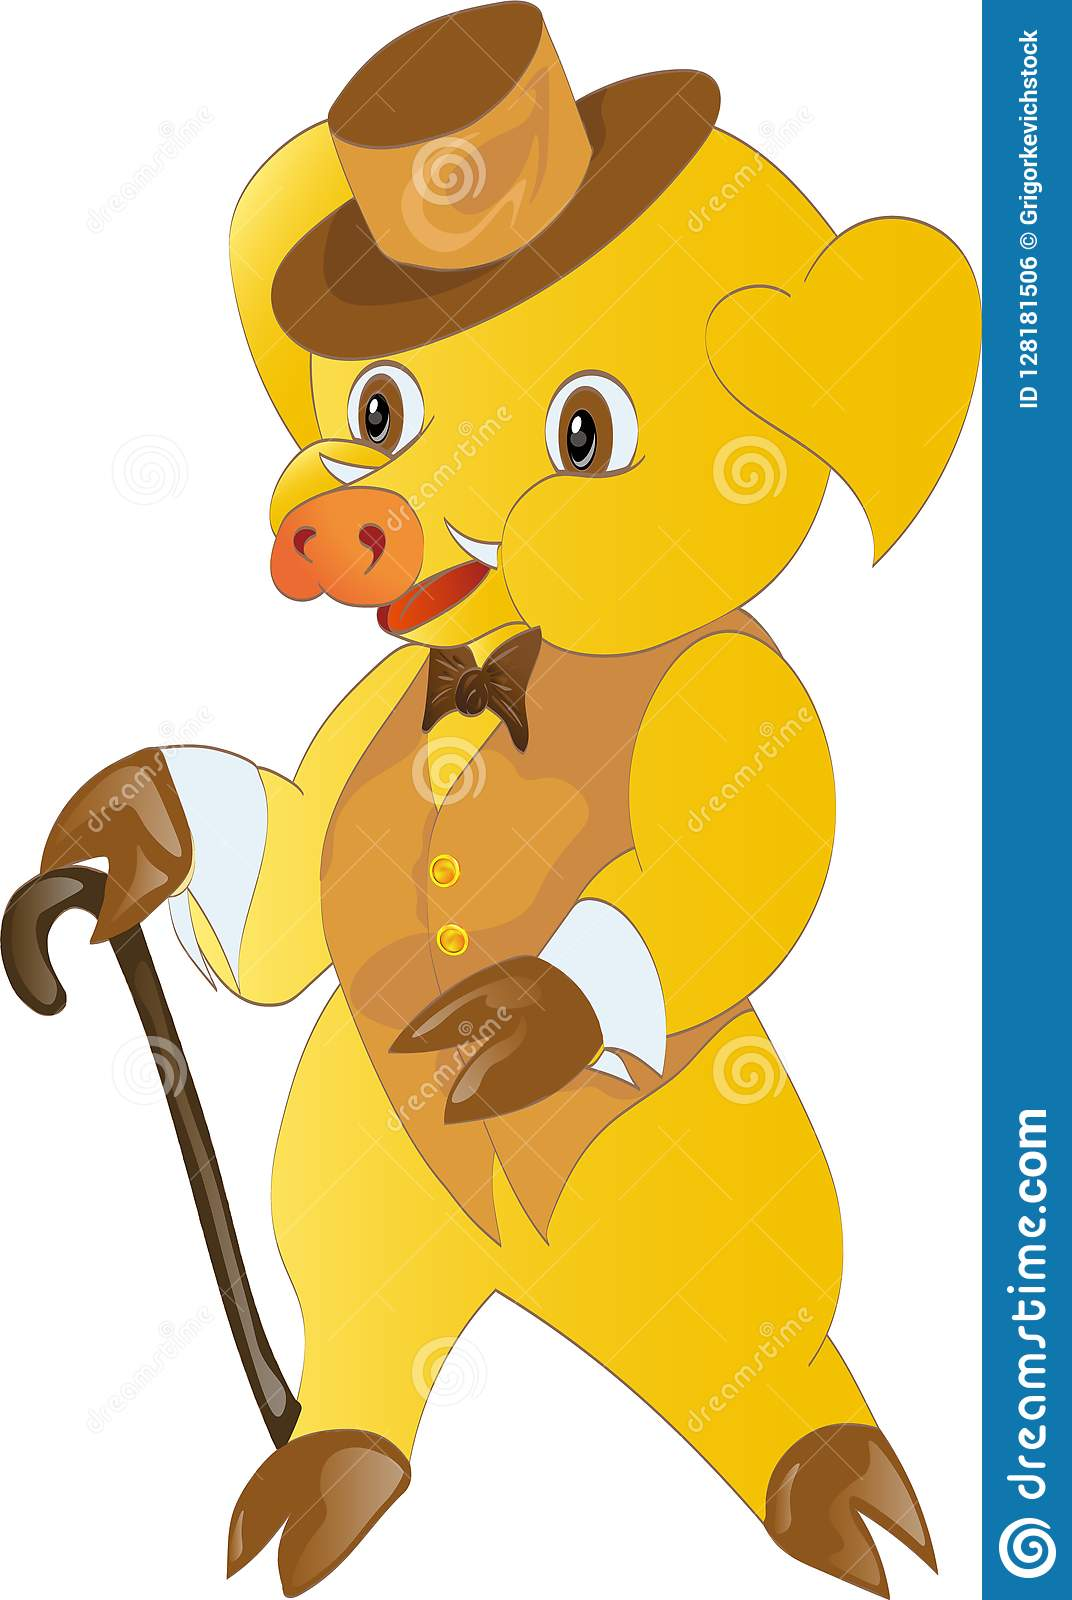 Symbol of the new year yellow pig in the image of a true gentleman